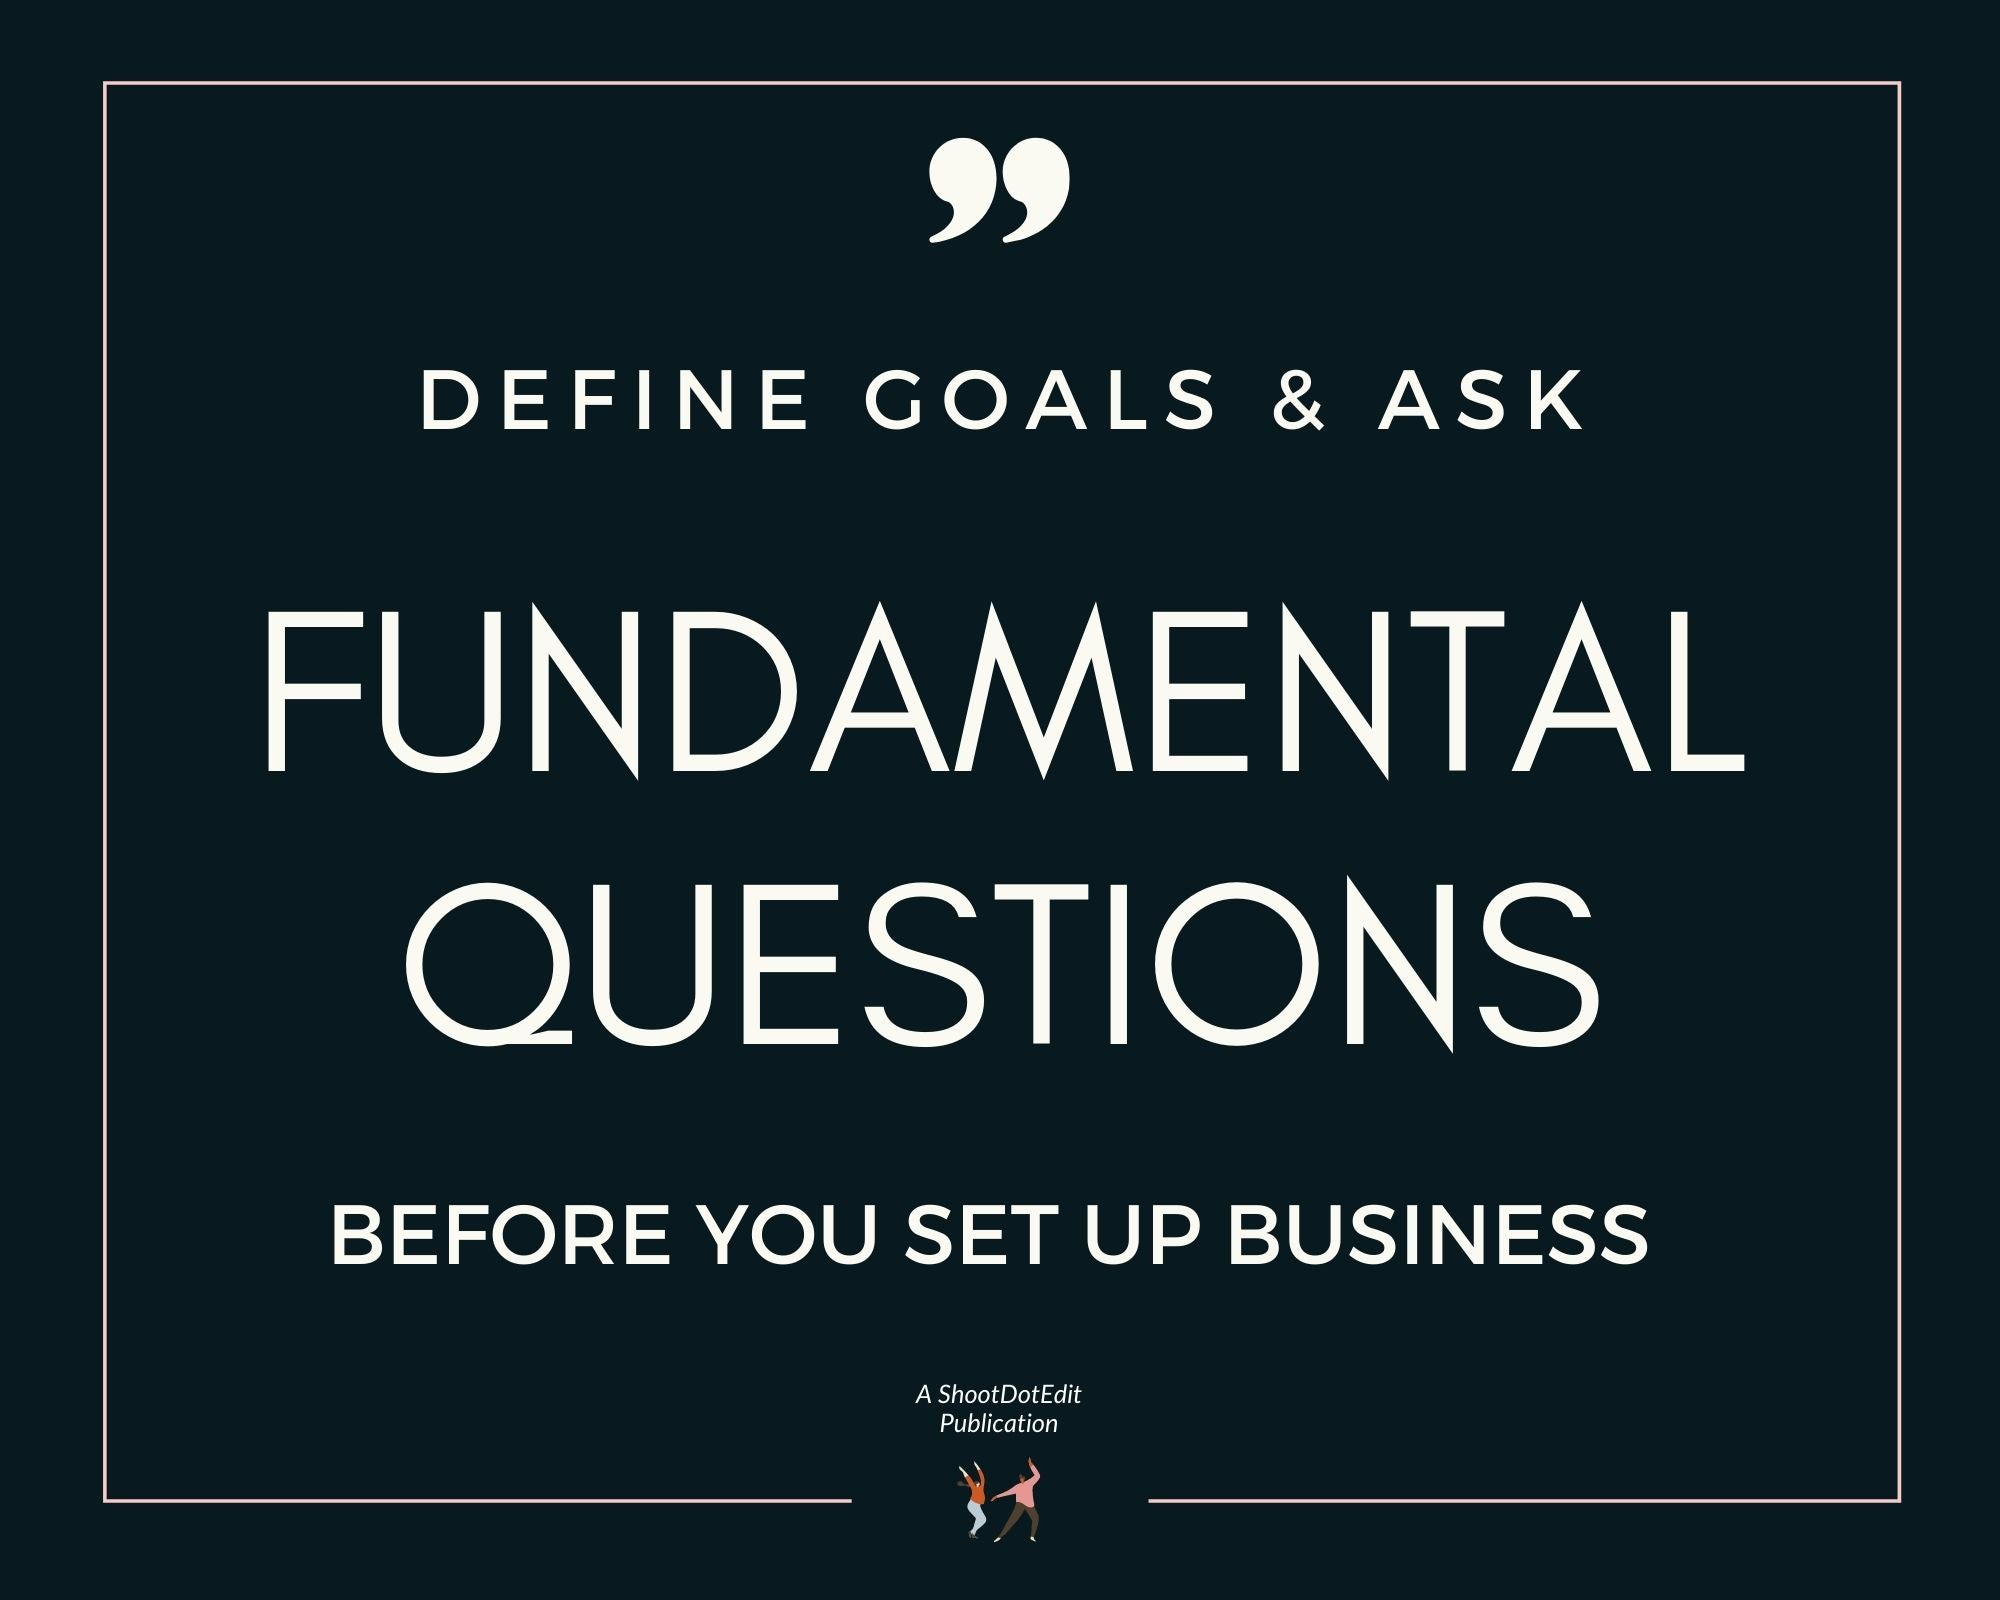 Infographic stating define goals and ask fundamental questions before you set up business